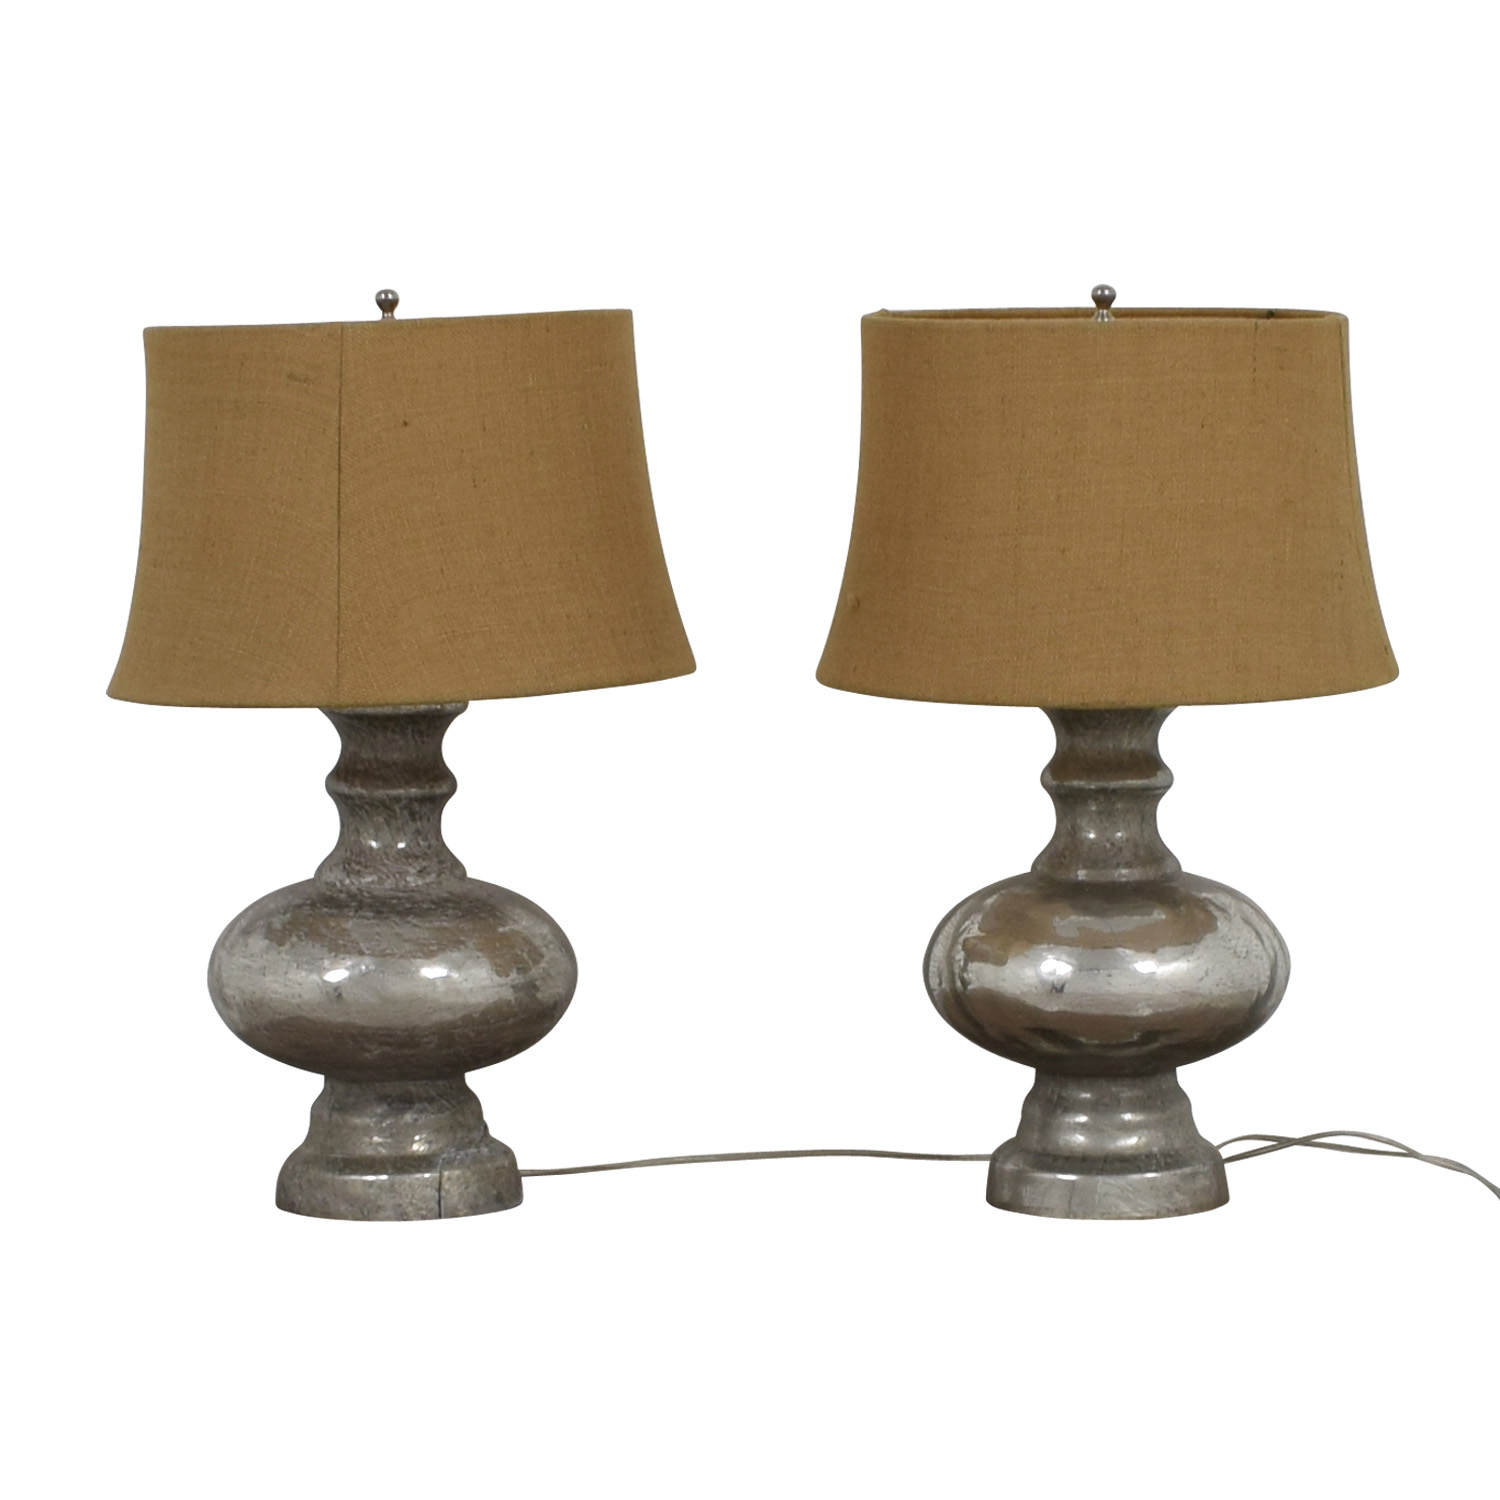 Pottery Barn Antique Mercury Glass Table Lamps / Decor